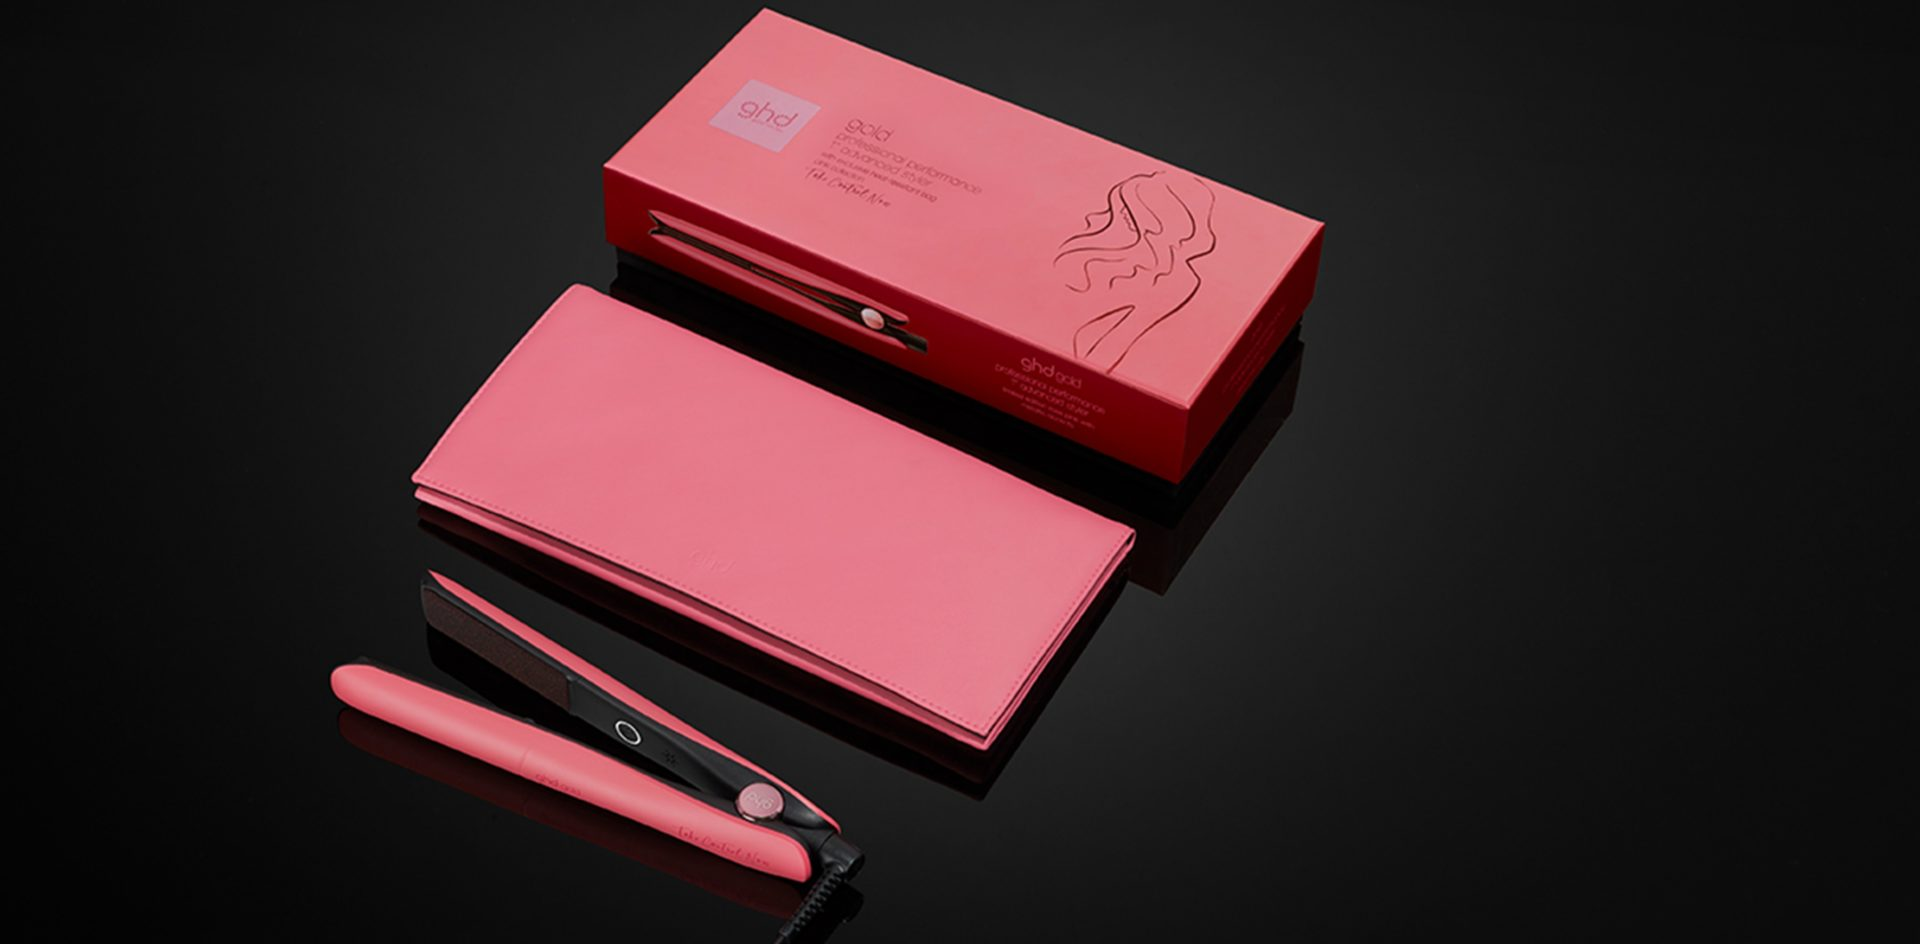 GHD Pink Gold Stylers at Hair Ministry 2